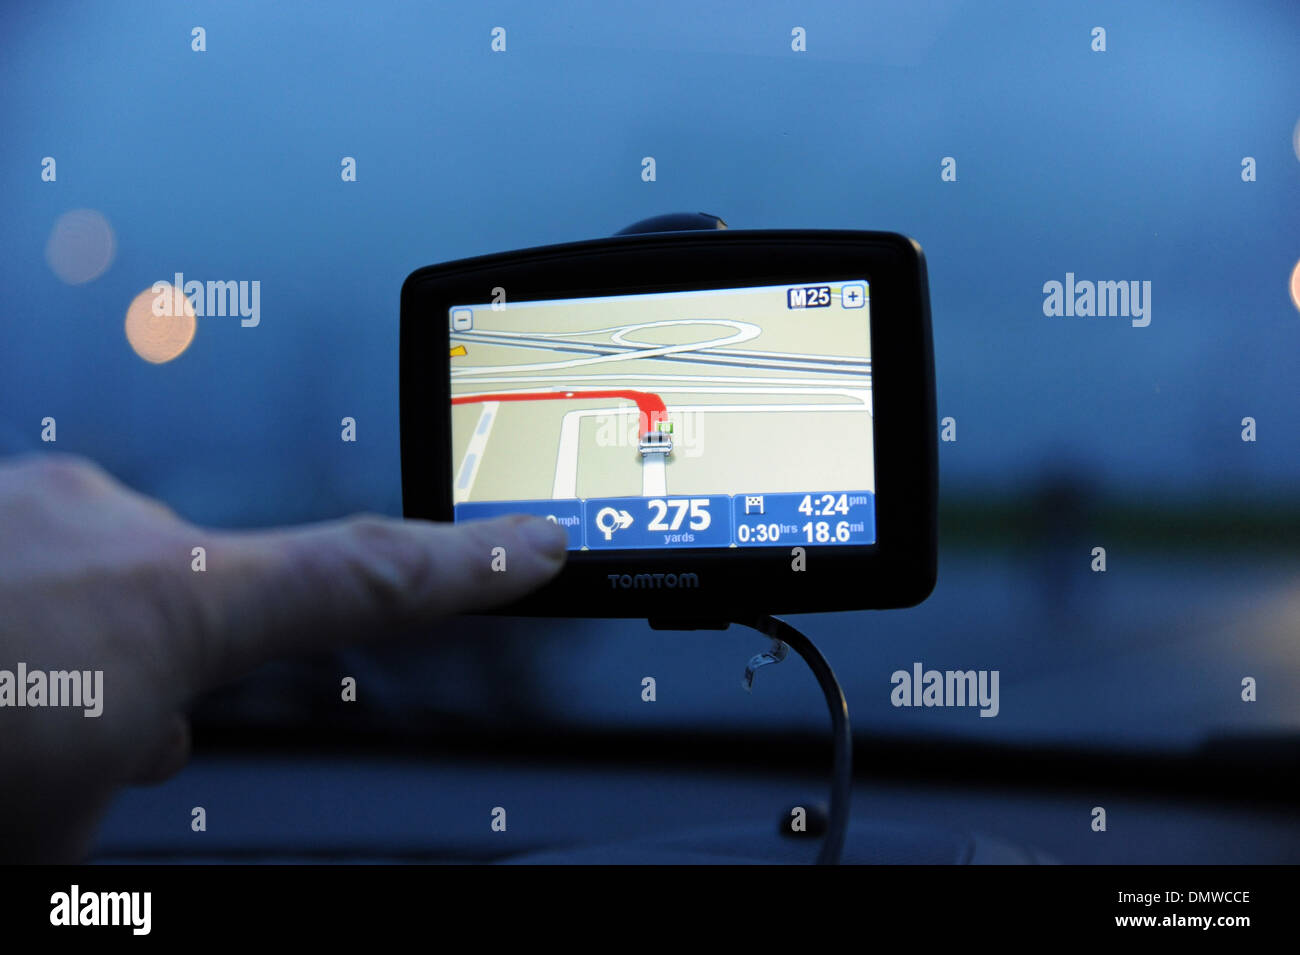 TomTom Sat nav being used in a car for navigation Stock Photo